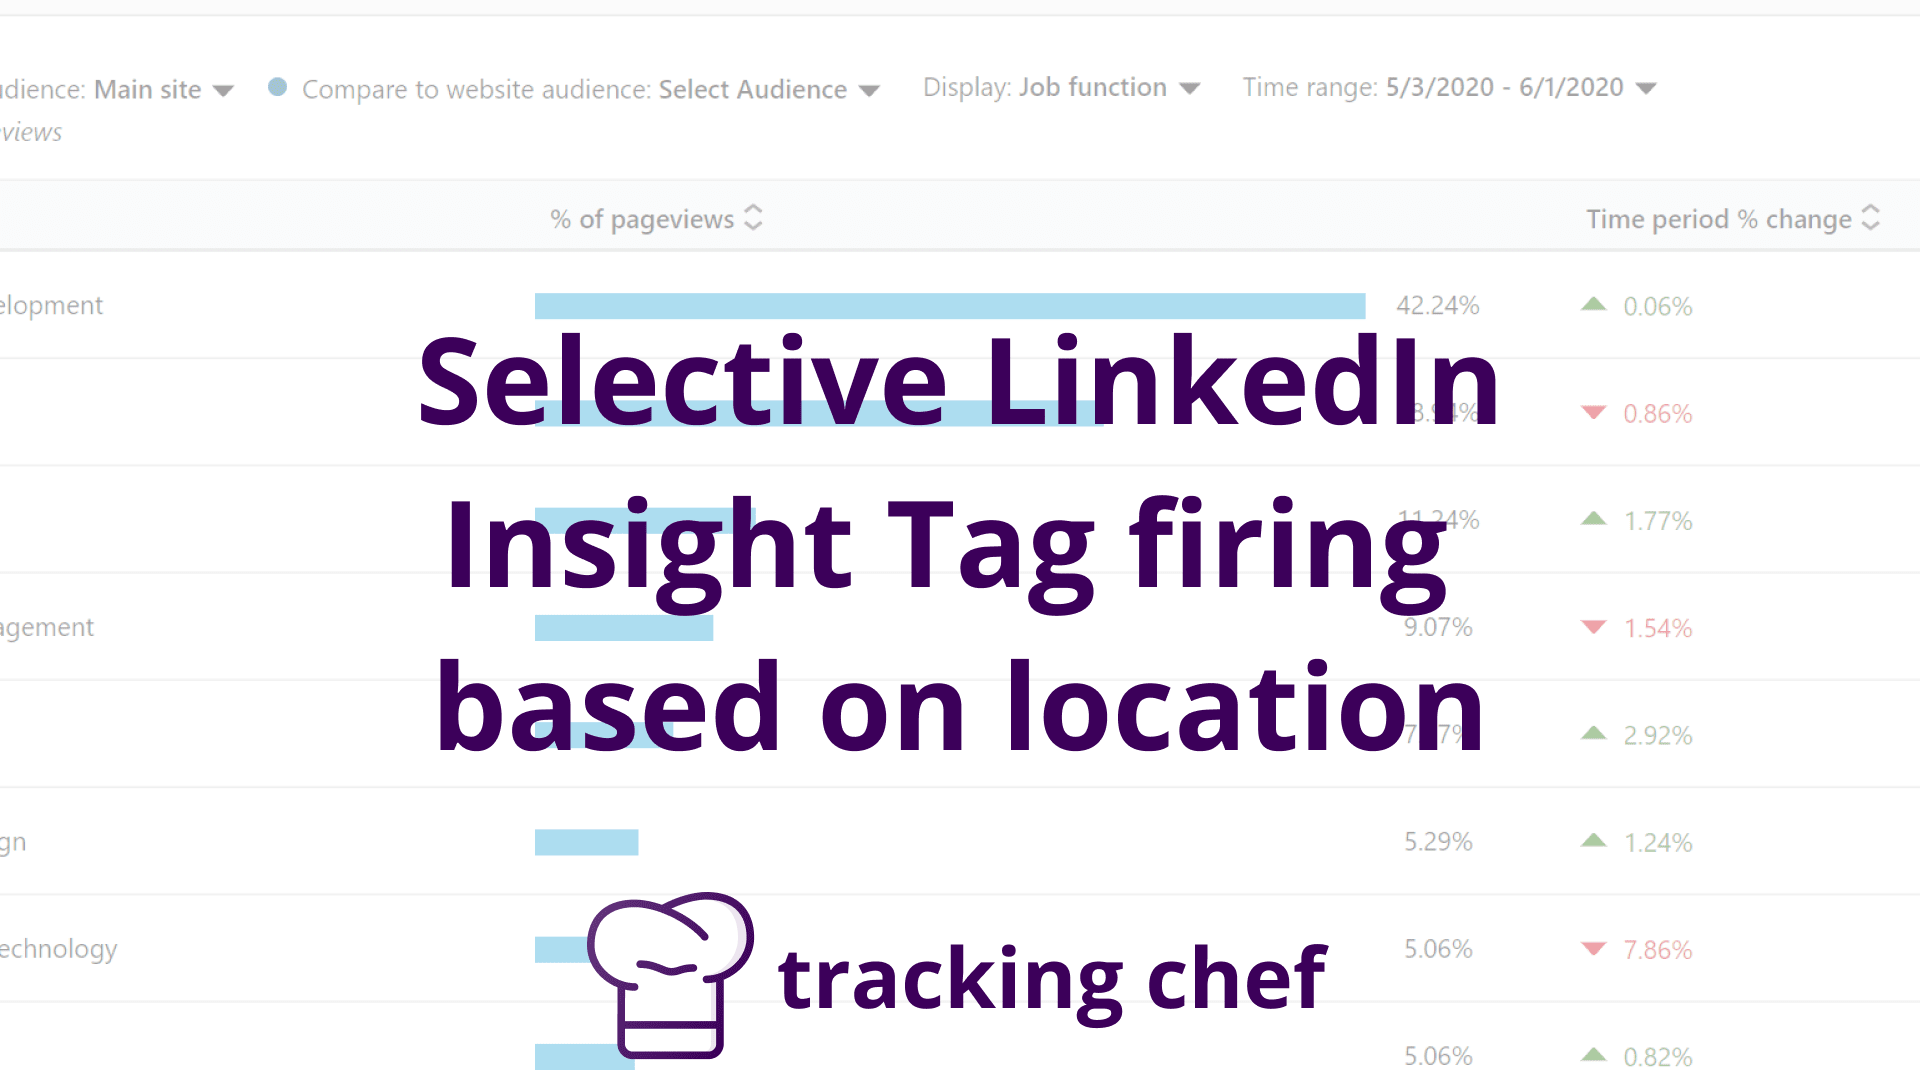 Selective LinkedIn Insight Tag firing based on location